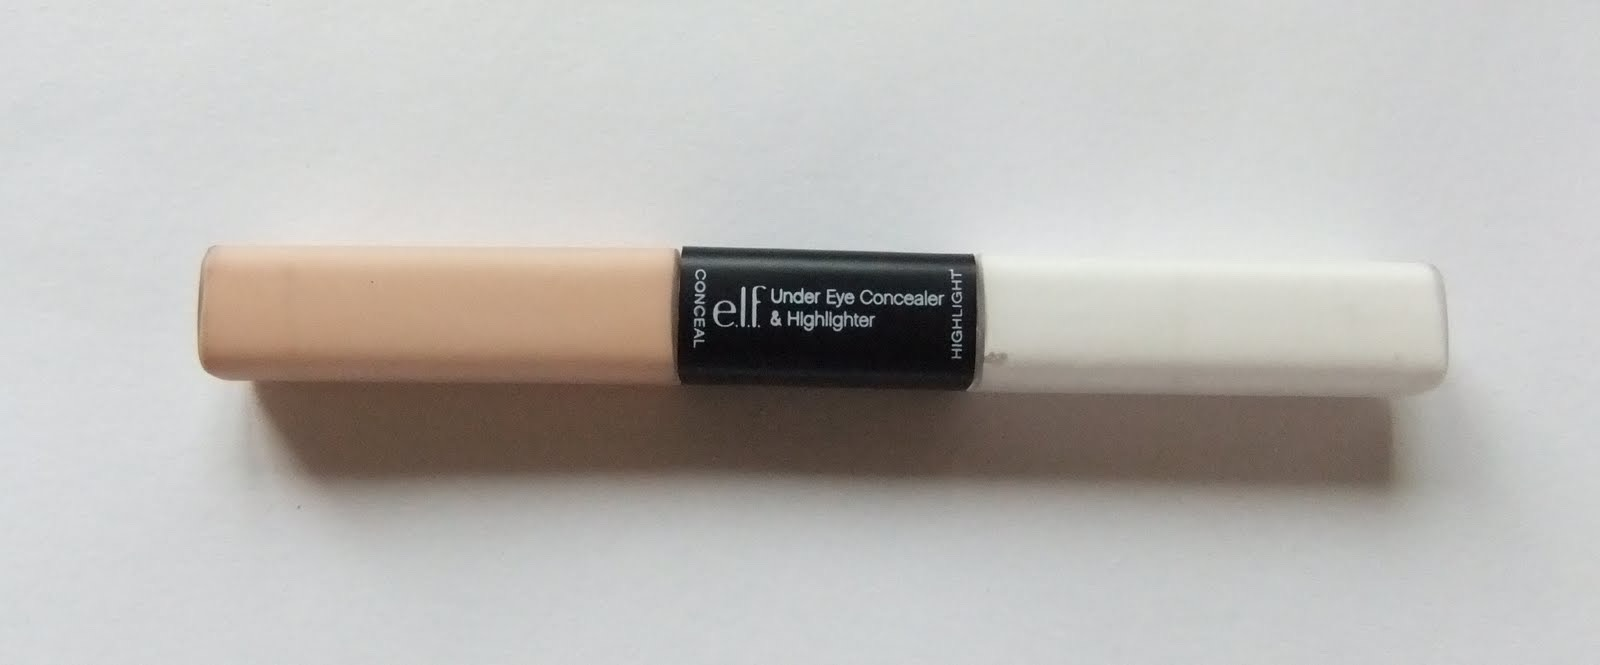 this elf concealer and highlighter is 1-3 dollars, and can be found at target. it honestly works really great